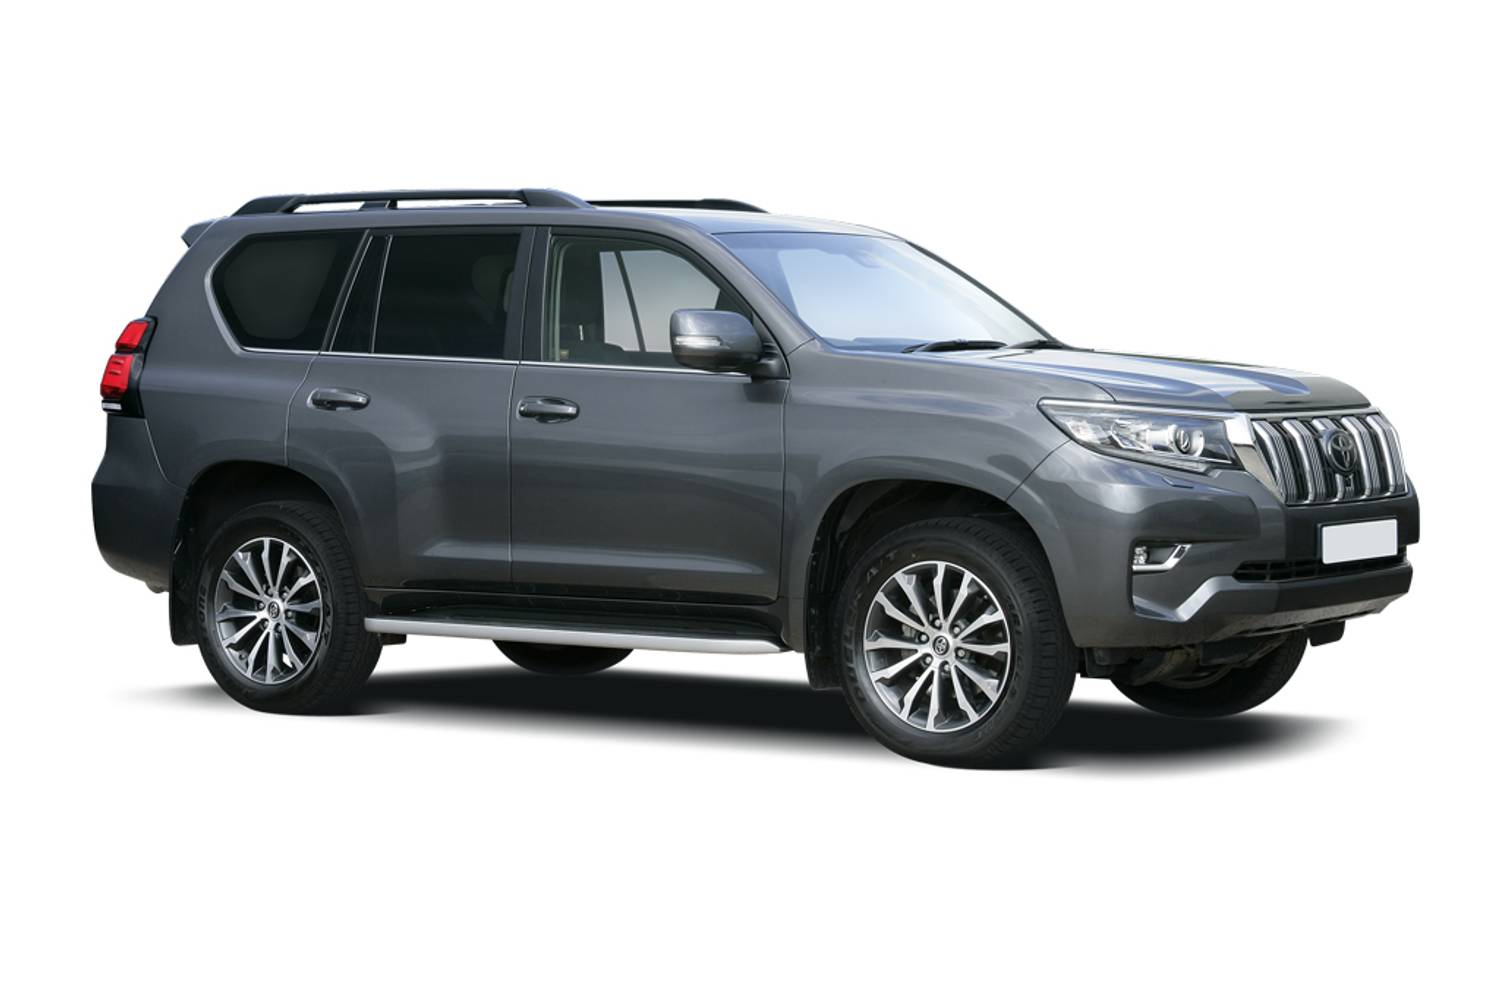 new toyota land cruiser diesel sw 2 8 d 4d icon 5 door auto 7 seats off road 2018 for sale. Black Bedroom Furniture Sets. Home Design Ideas